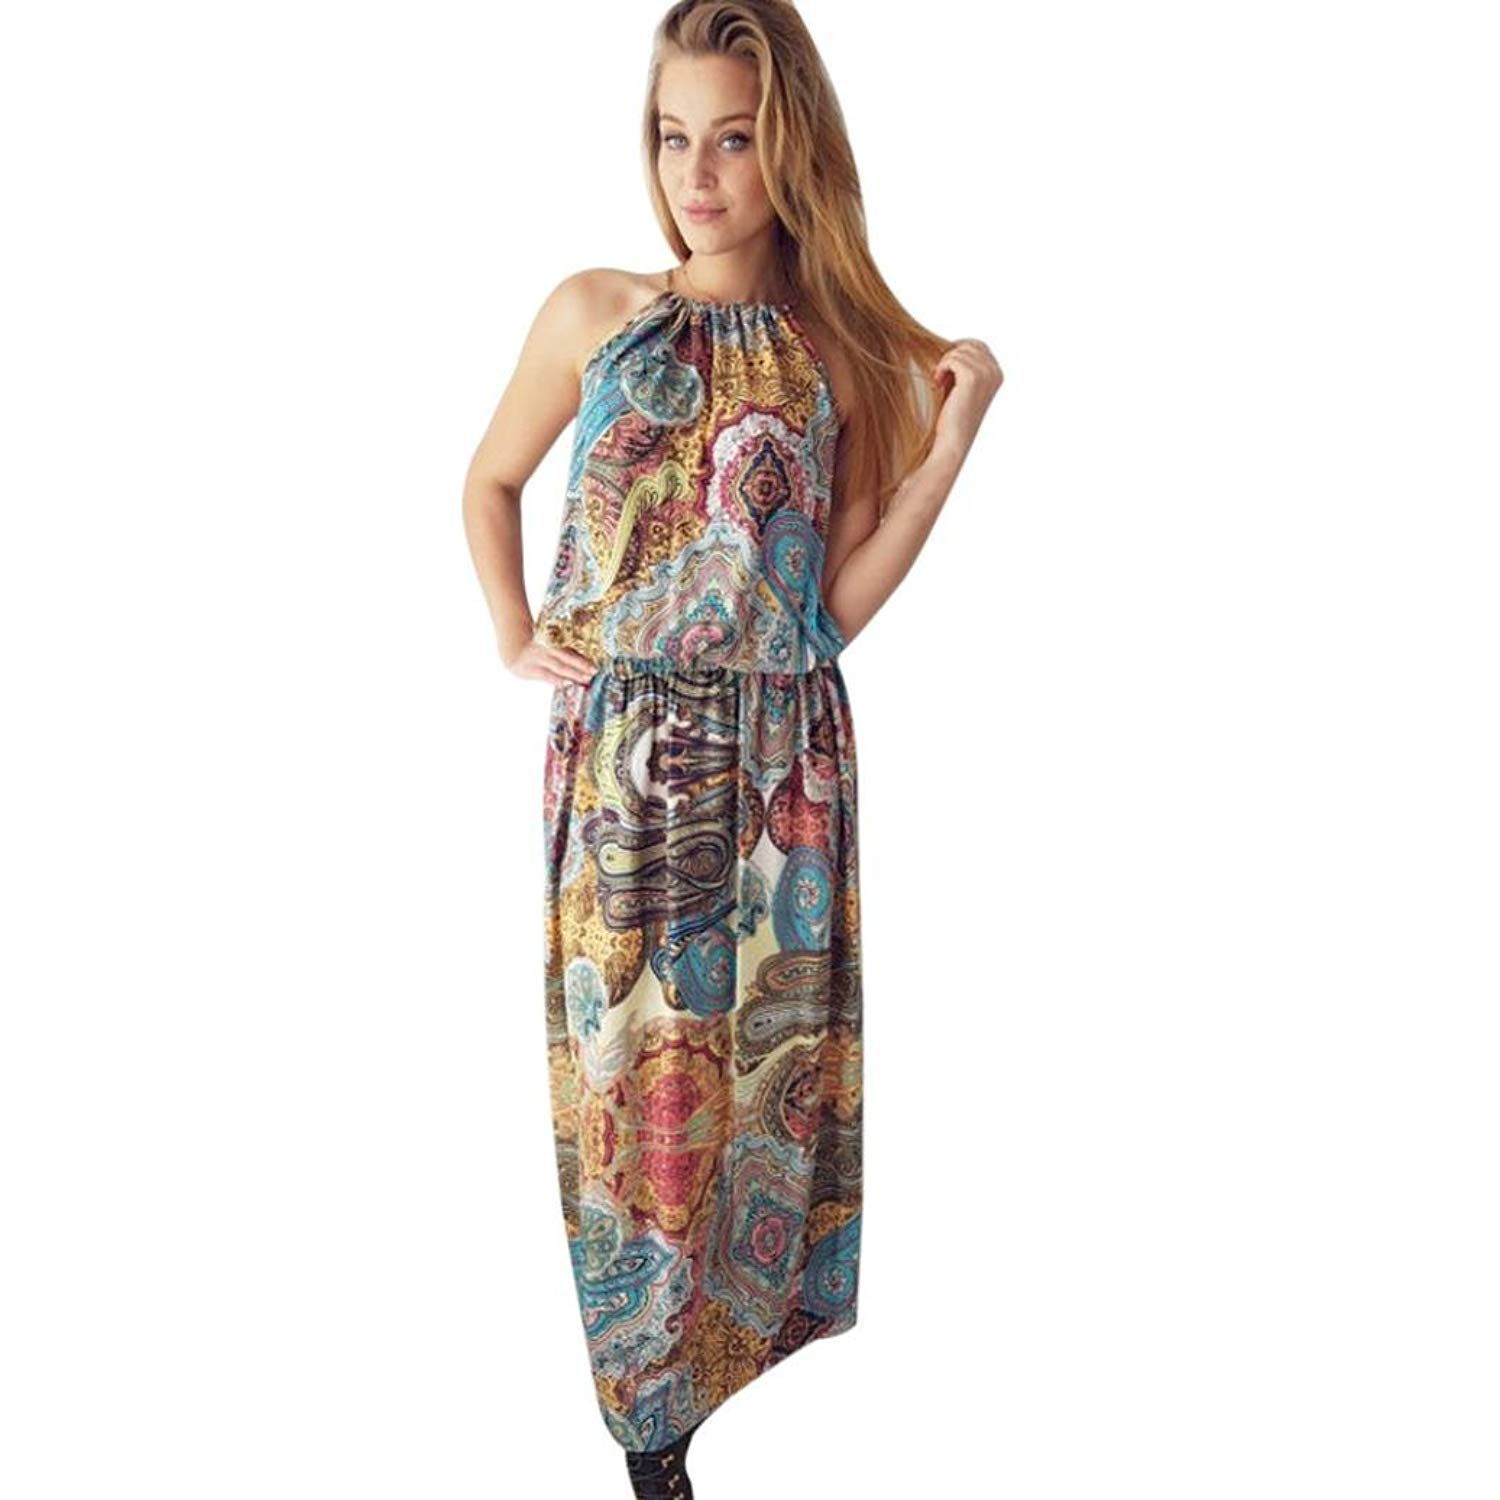 Caopixx Boho Dress, Womens Summer Vintage Boho Long Maxi Dress Evening Party Beach Floral Dress